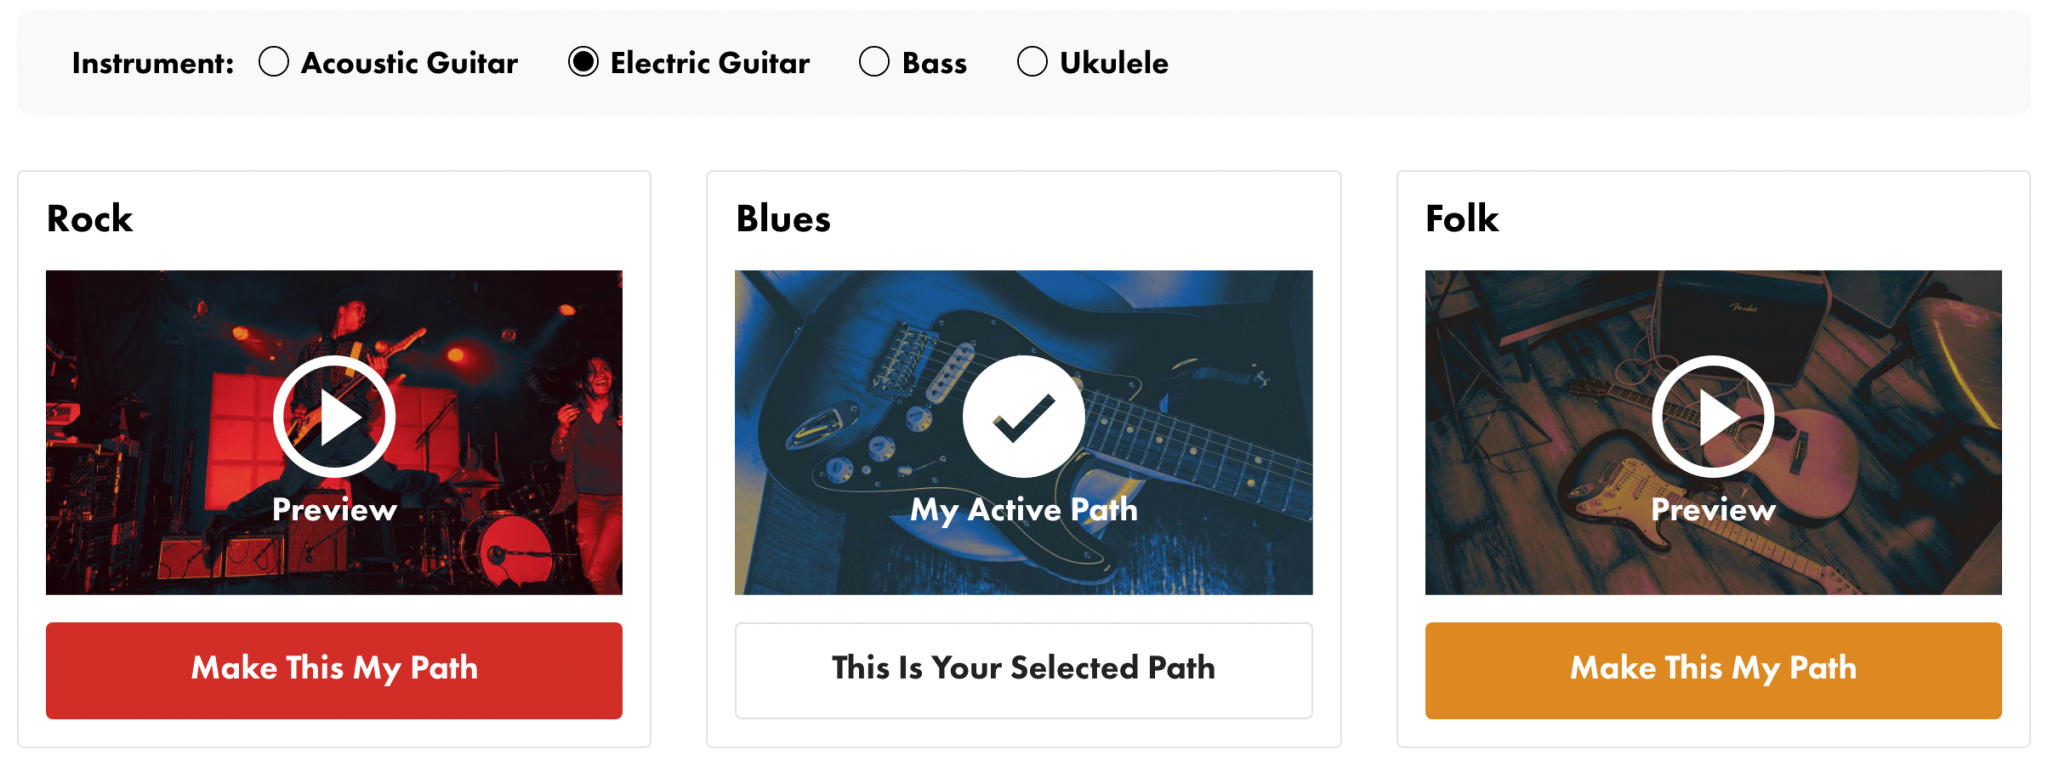 Fender Play Choose Your Path Image